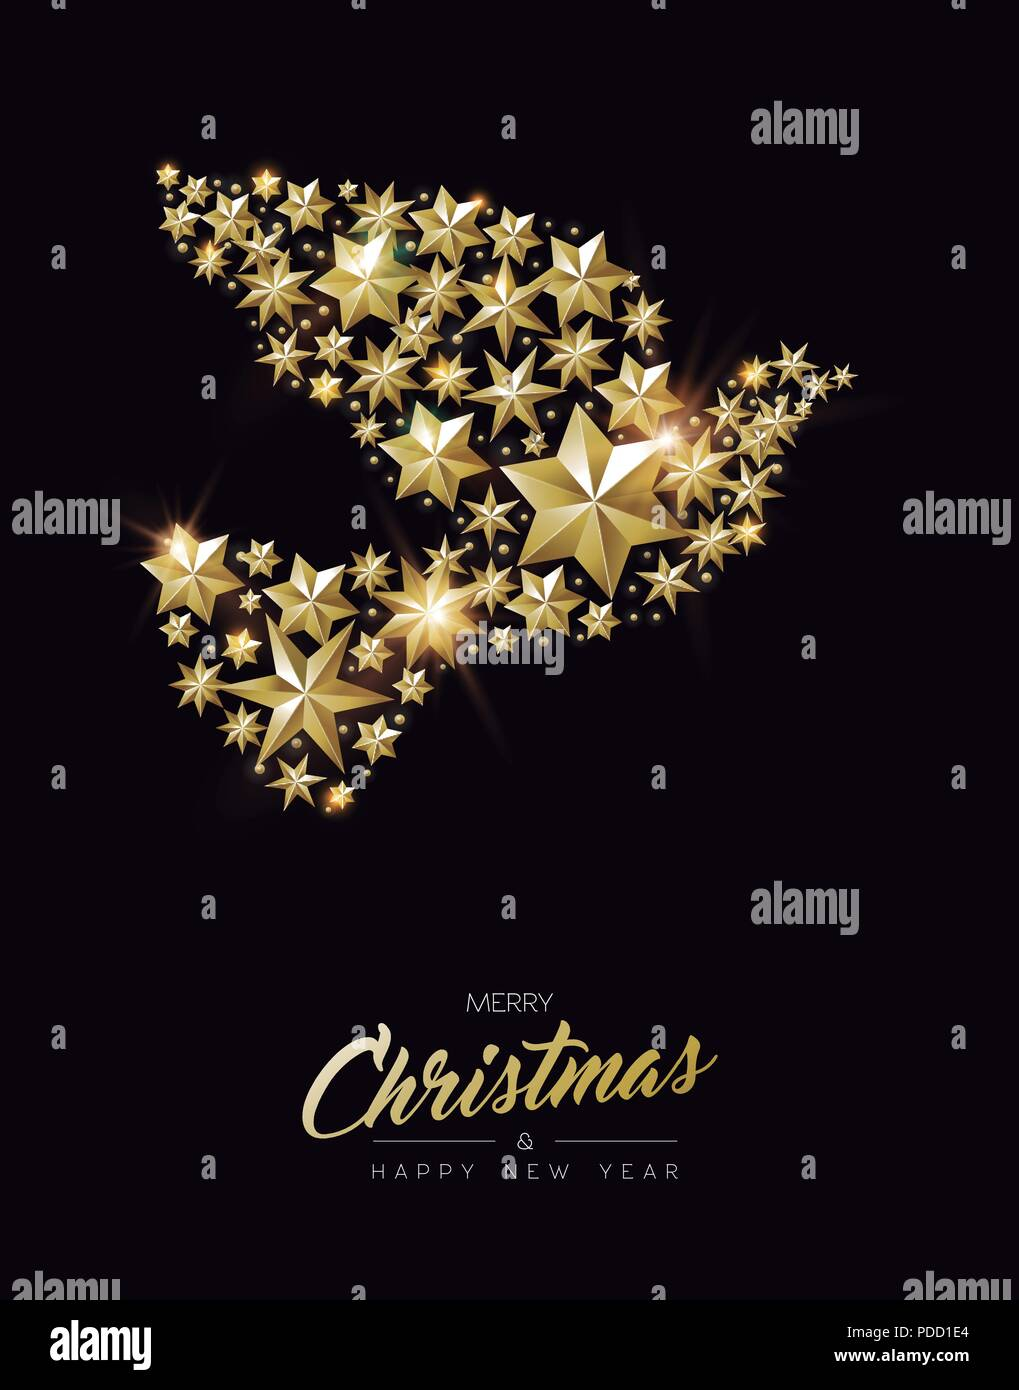 merry christmas new year greeting card with realistic gold stars and glitter making elegant peace dove shape luxury golden decoration for xmas seaso